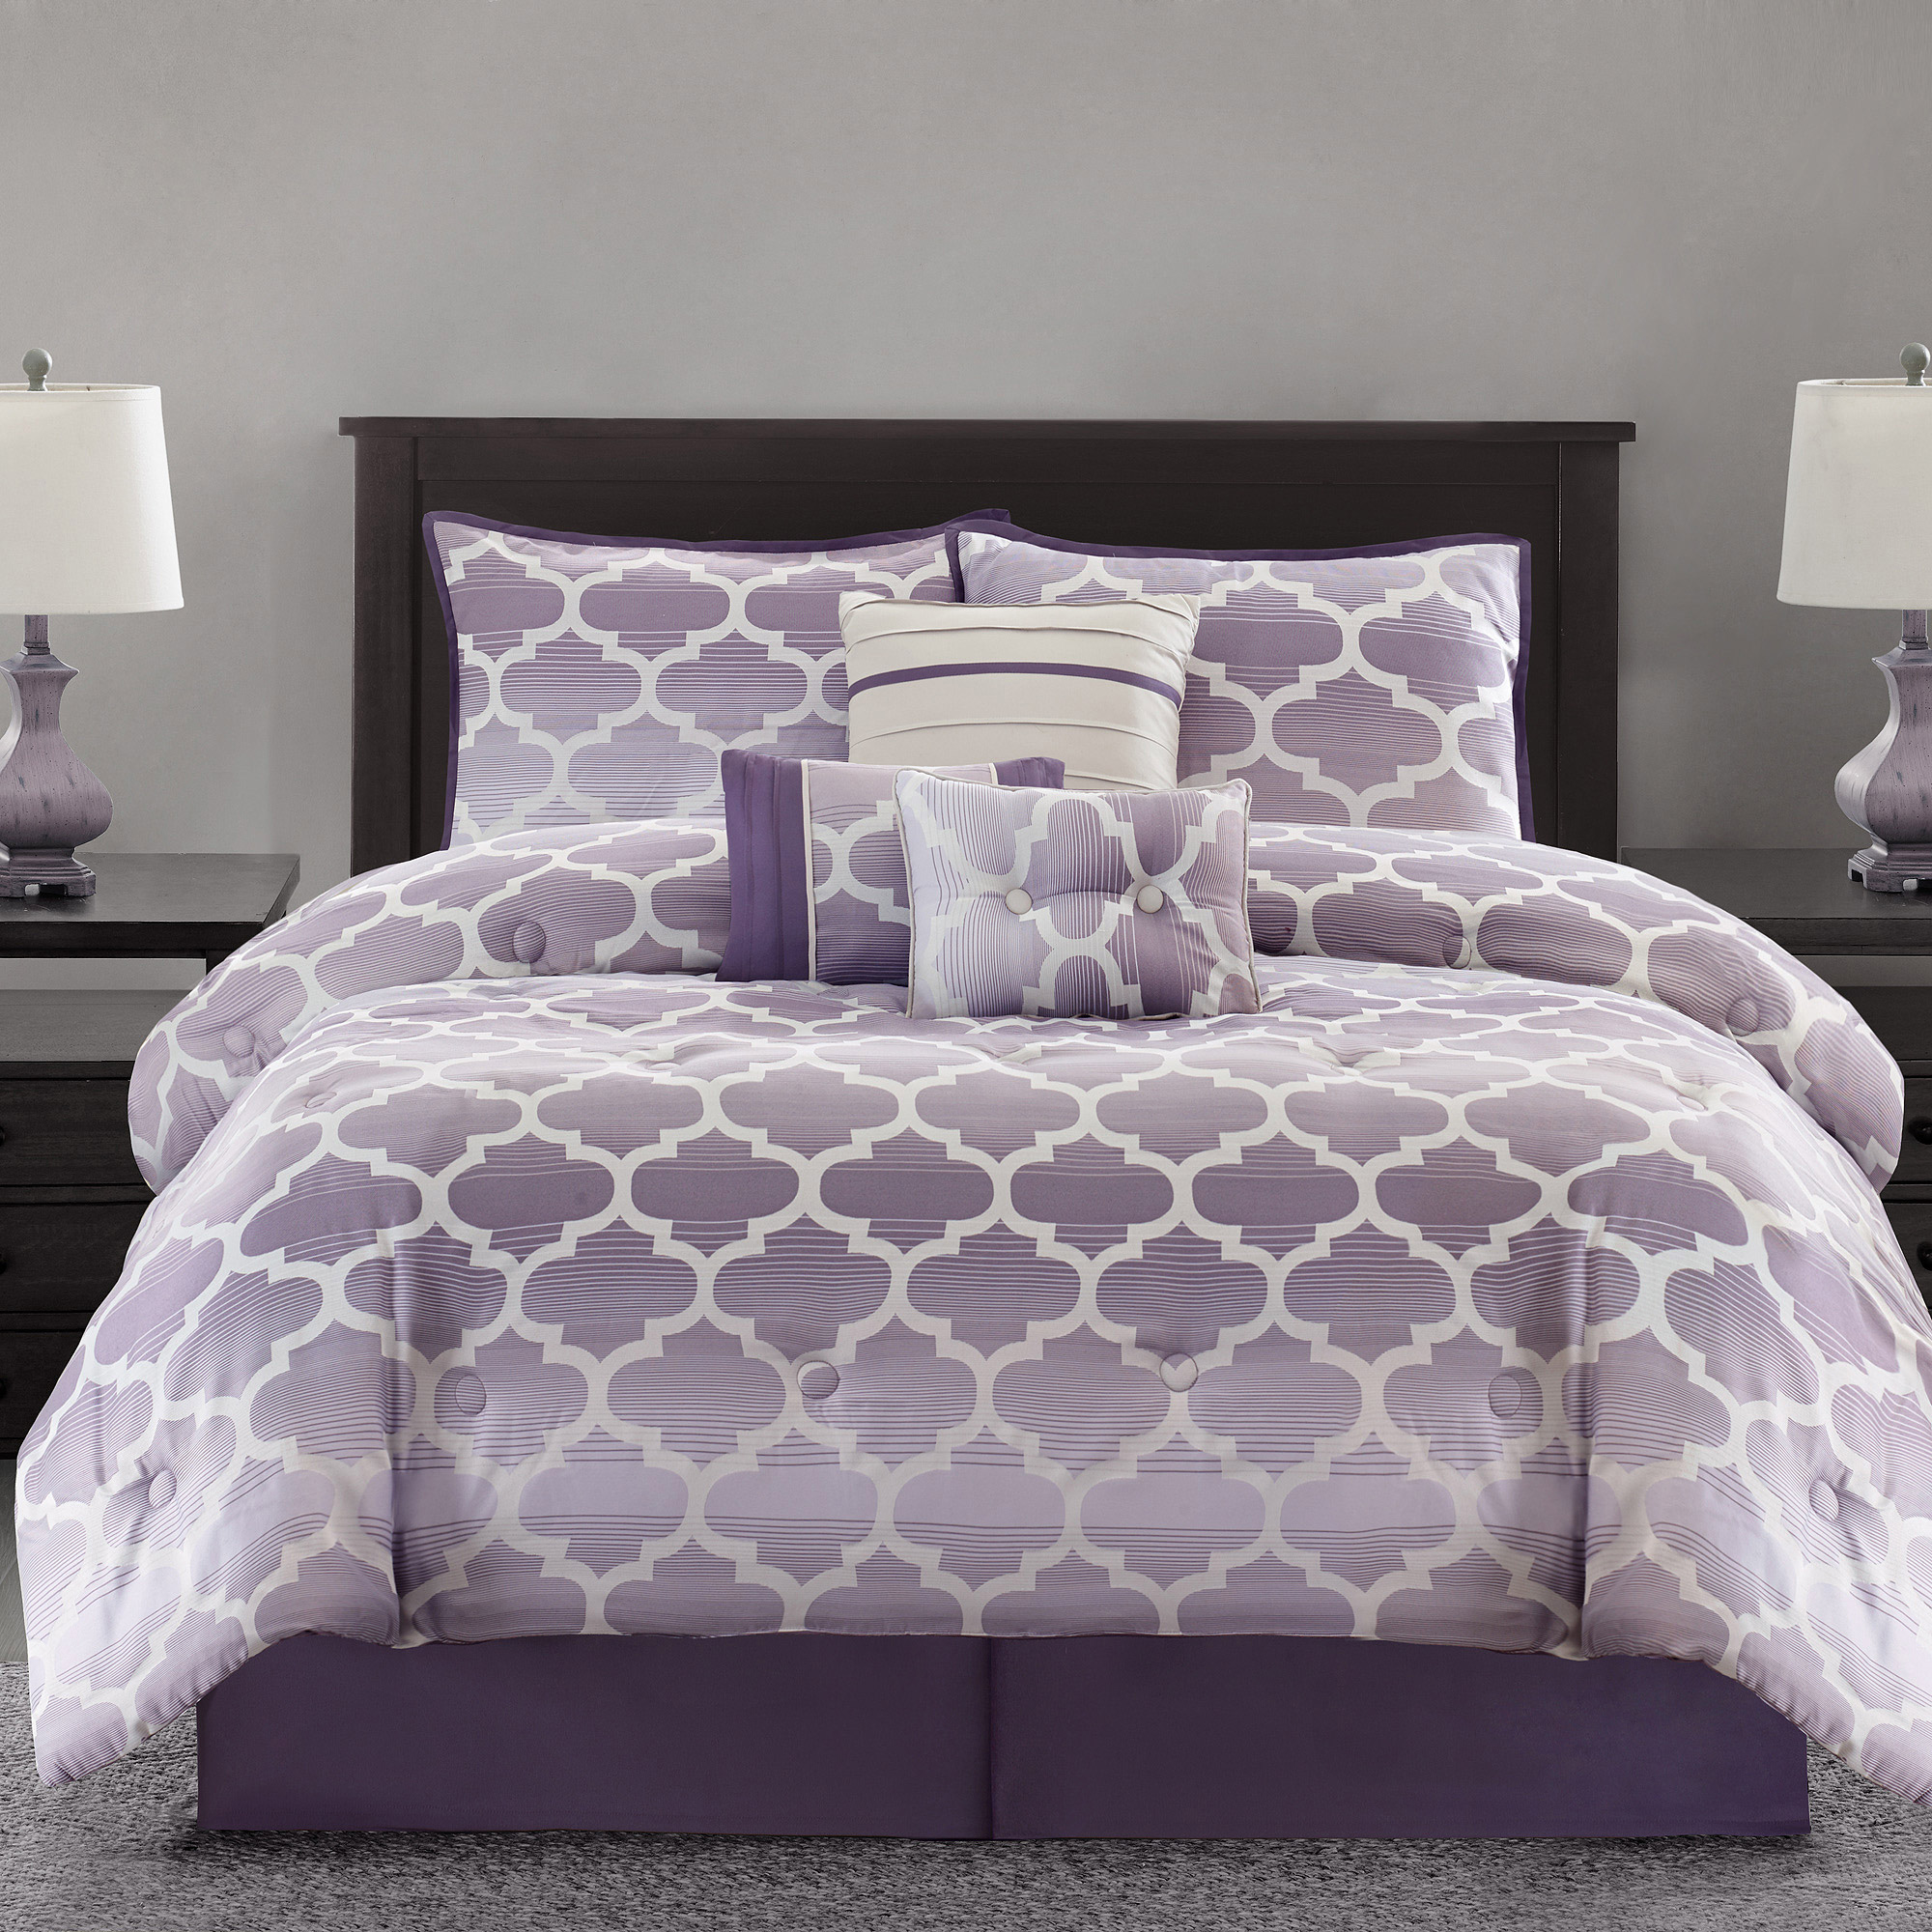 set ecrins bed comforter camo bedding lodge special purple